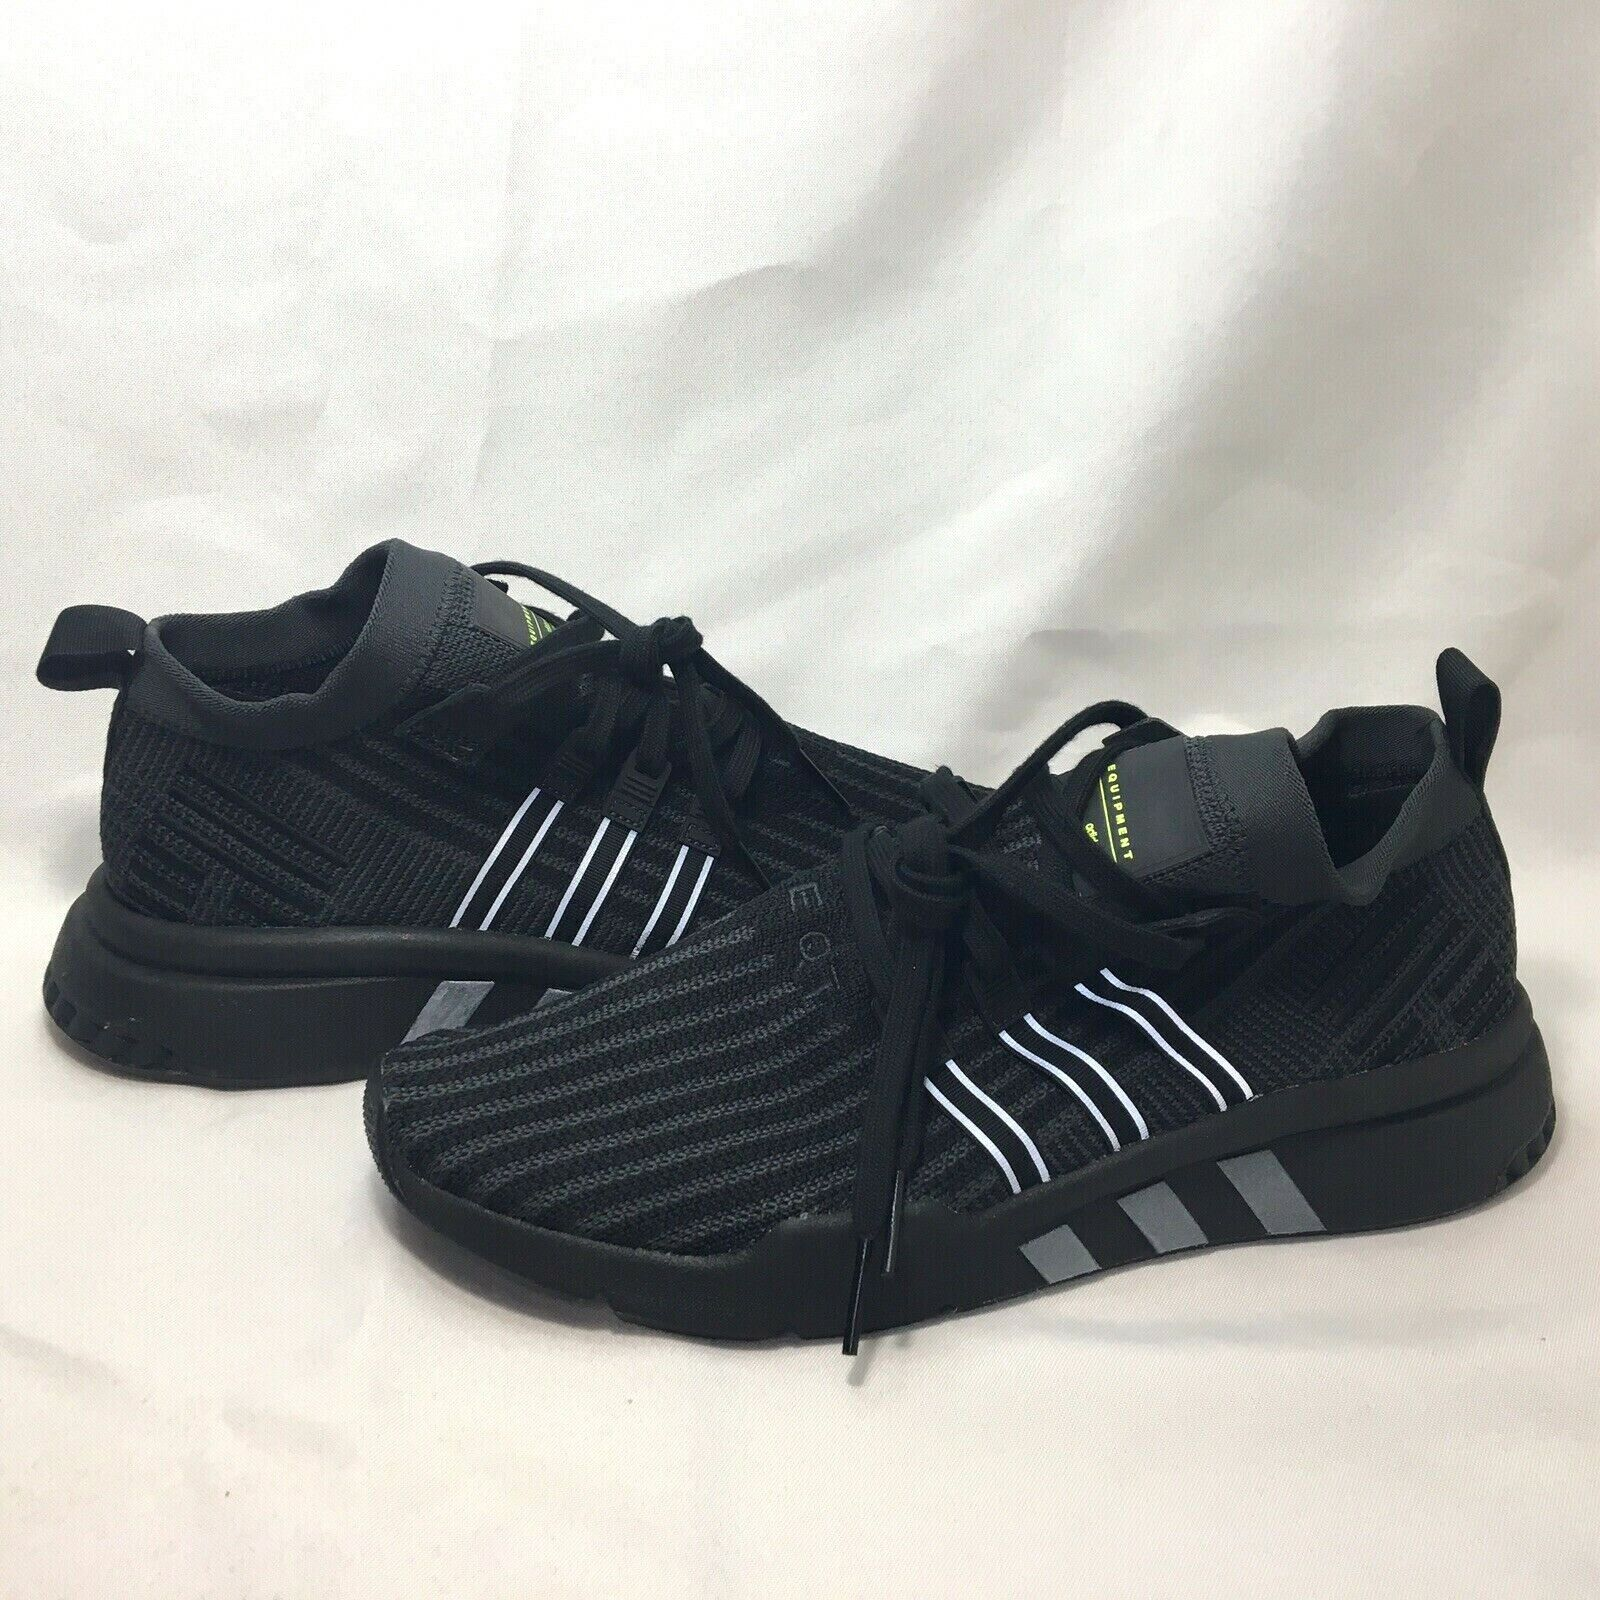 ADIDAS EQT SUPPORT MID ADV 91-18 PK MENS SHOES BLACK CARBON SIZE 12 B37456